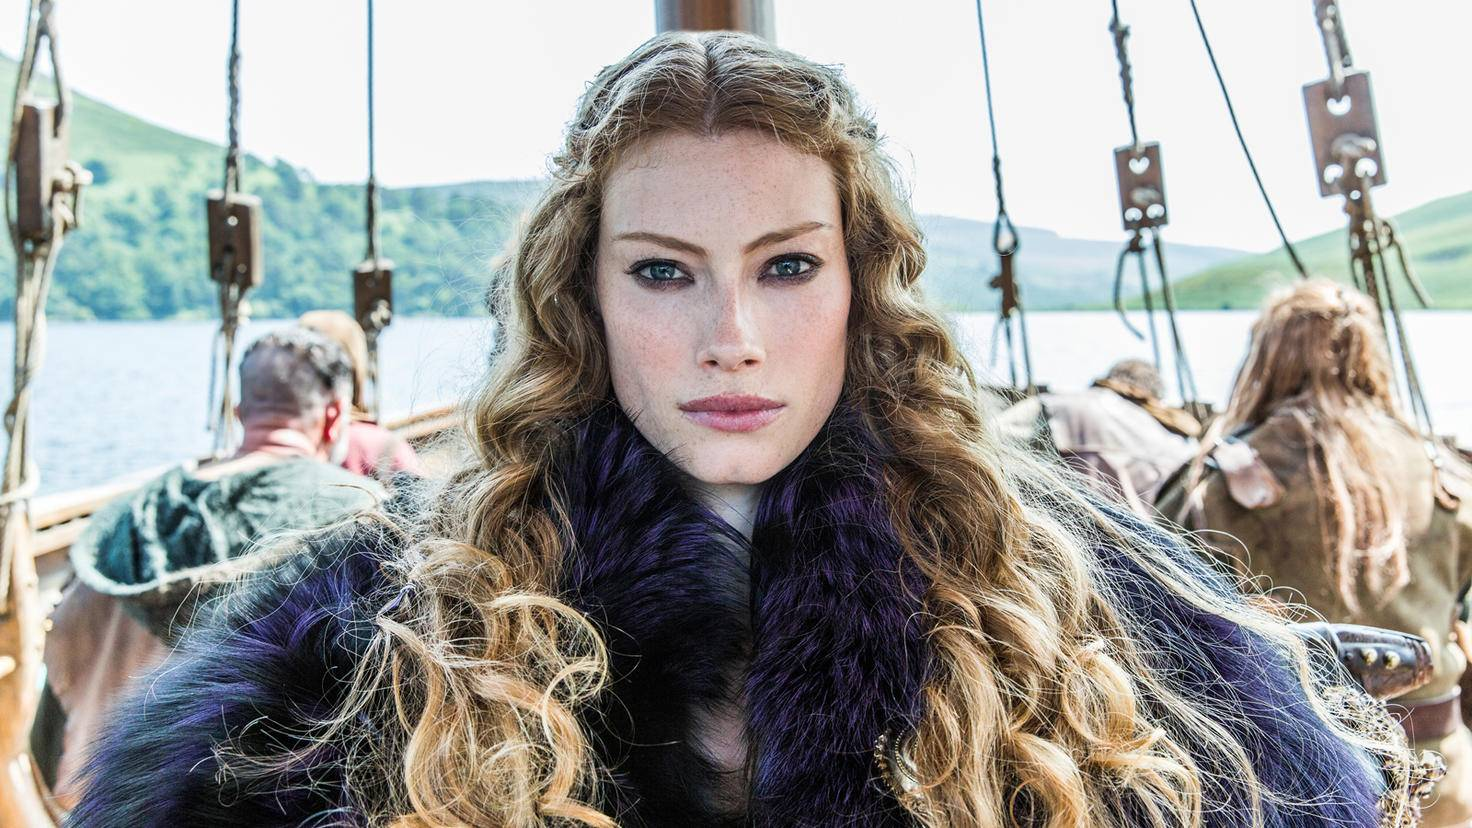 Aslaug Staffel 2 Vikings